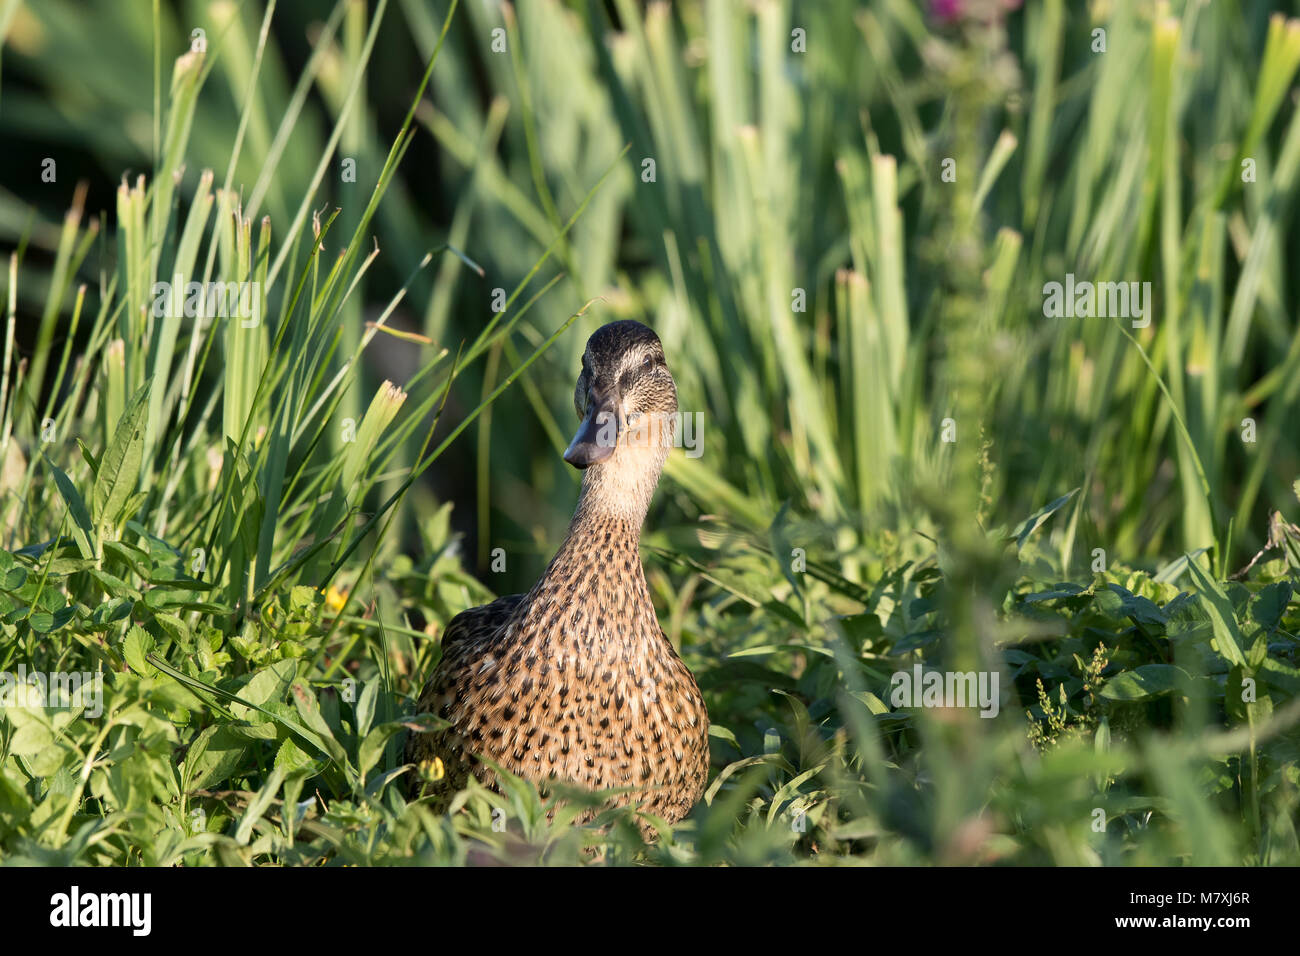 Single, adult female mallard (Anas platyrhynchos) makes comical appearance, popping up in middle of wild green vegetation, - Stock Image